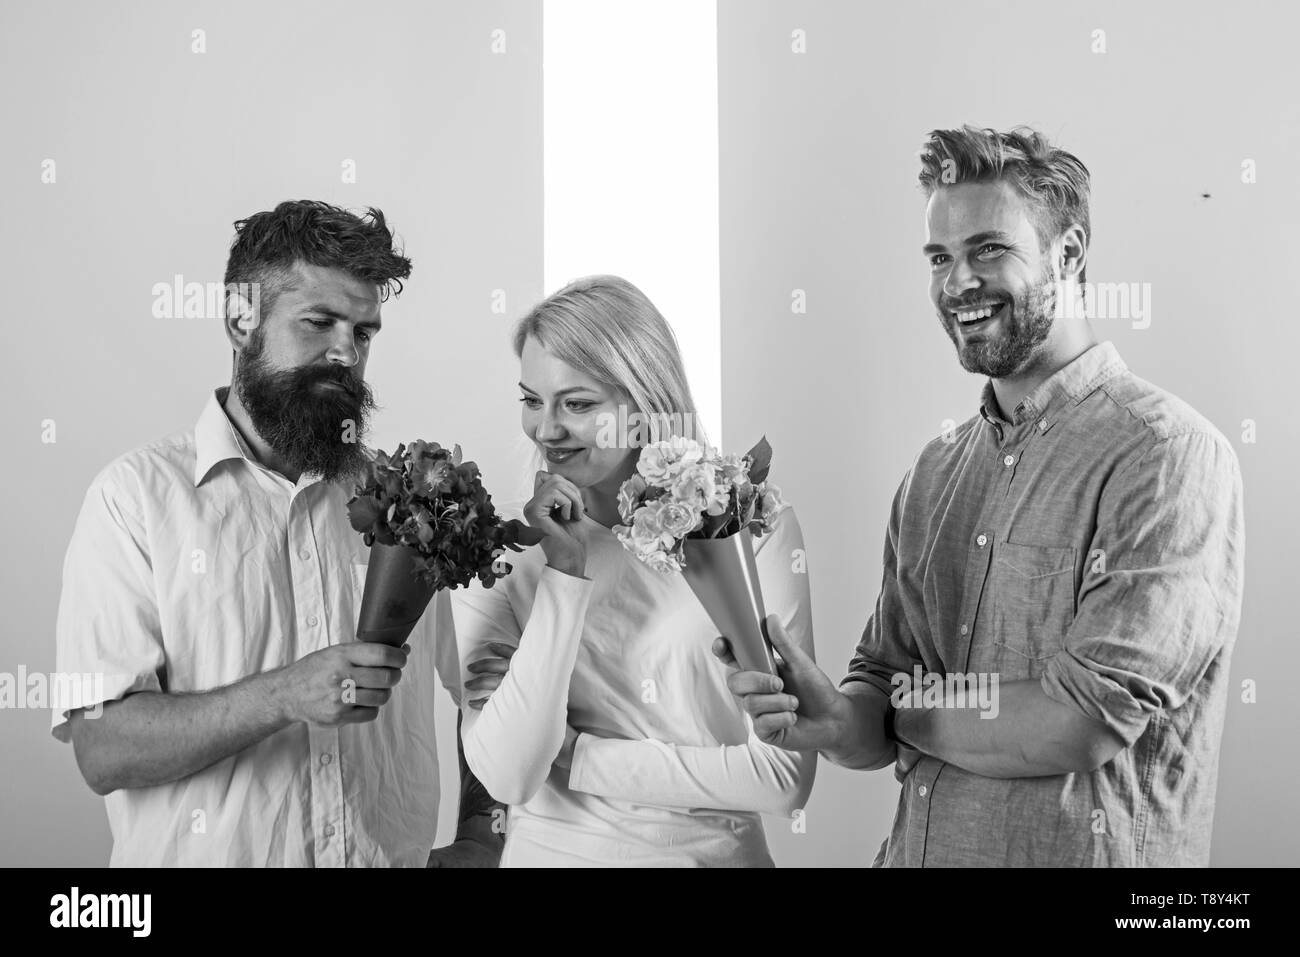 Men competitors with bouquets flowers try conquer girl. Girl likes to be in middle attention. Love triangle. Woman thoughtful has opportunity choose partner. Girl popular receive lot men attention. - Stock Image